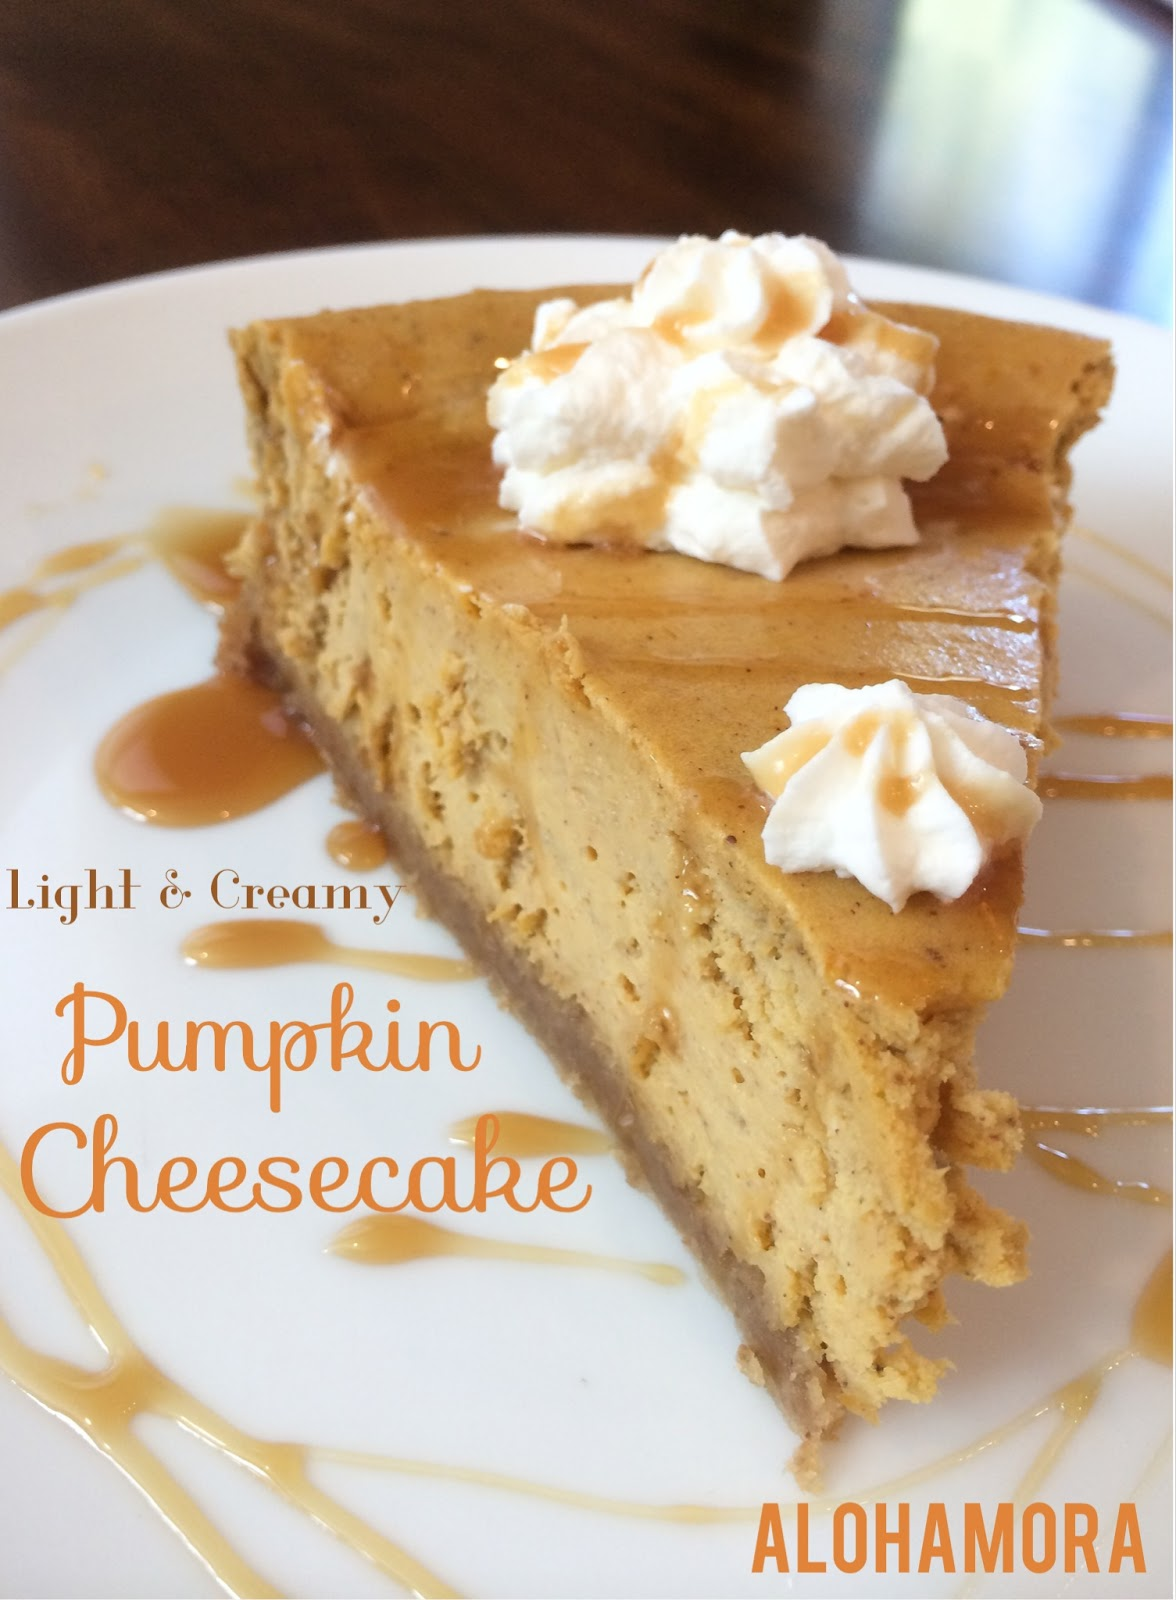 Pumpkin Cheesecake that is light and creamy and absolutely flavorful and amazing.  This cheesecake is a great alternative for those that don't like pumpkin pie, tho fans will love this pie as well.  It's not your heavy cheesecake, and it is actually relatively easy to make.  Alohamora Open a Book http://alohamoraopenabook.blogspot.com/